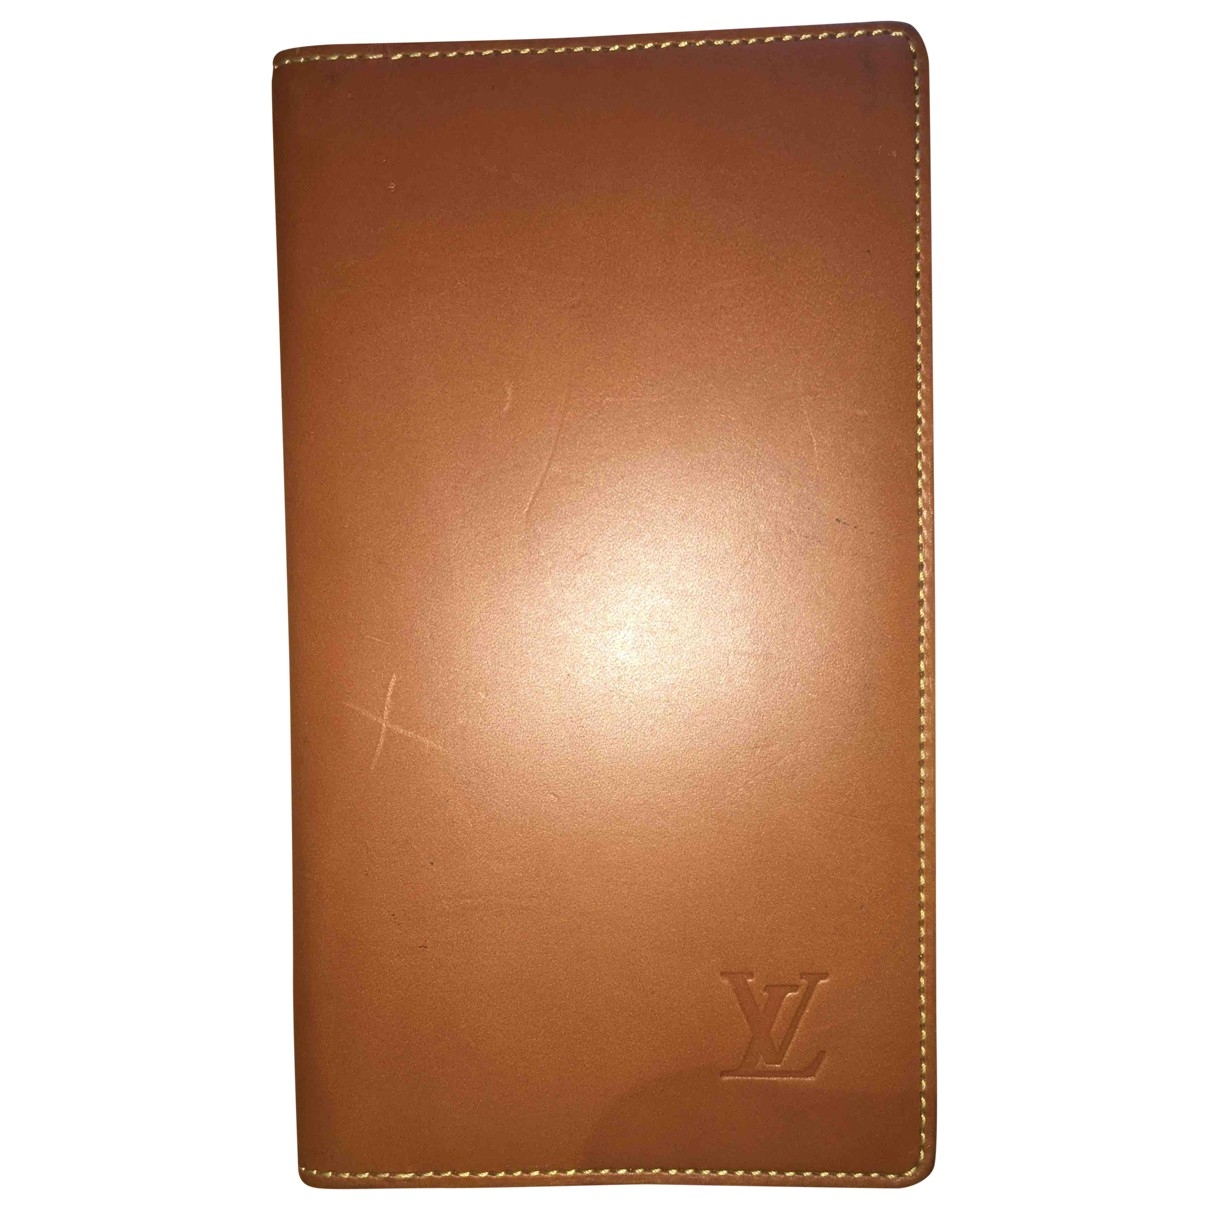 Louis Vuitton Pocket Organizer Brown Leather Small bag, wallet & cases for Men \N